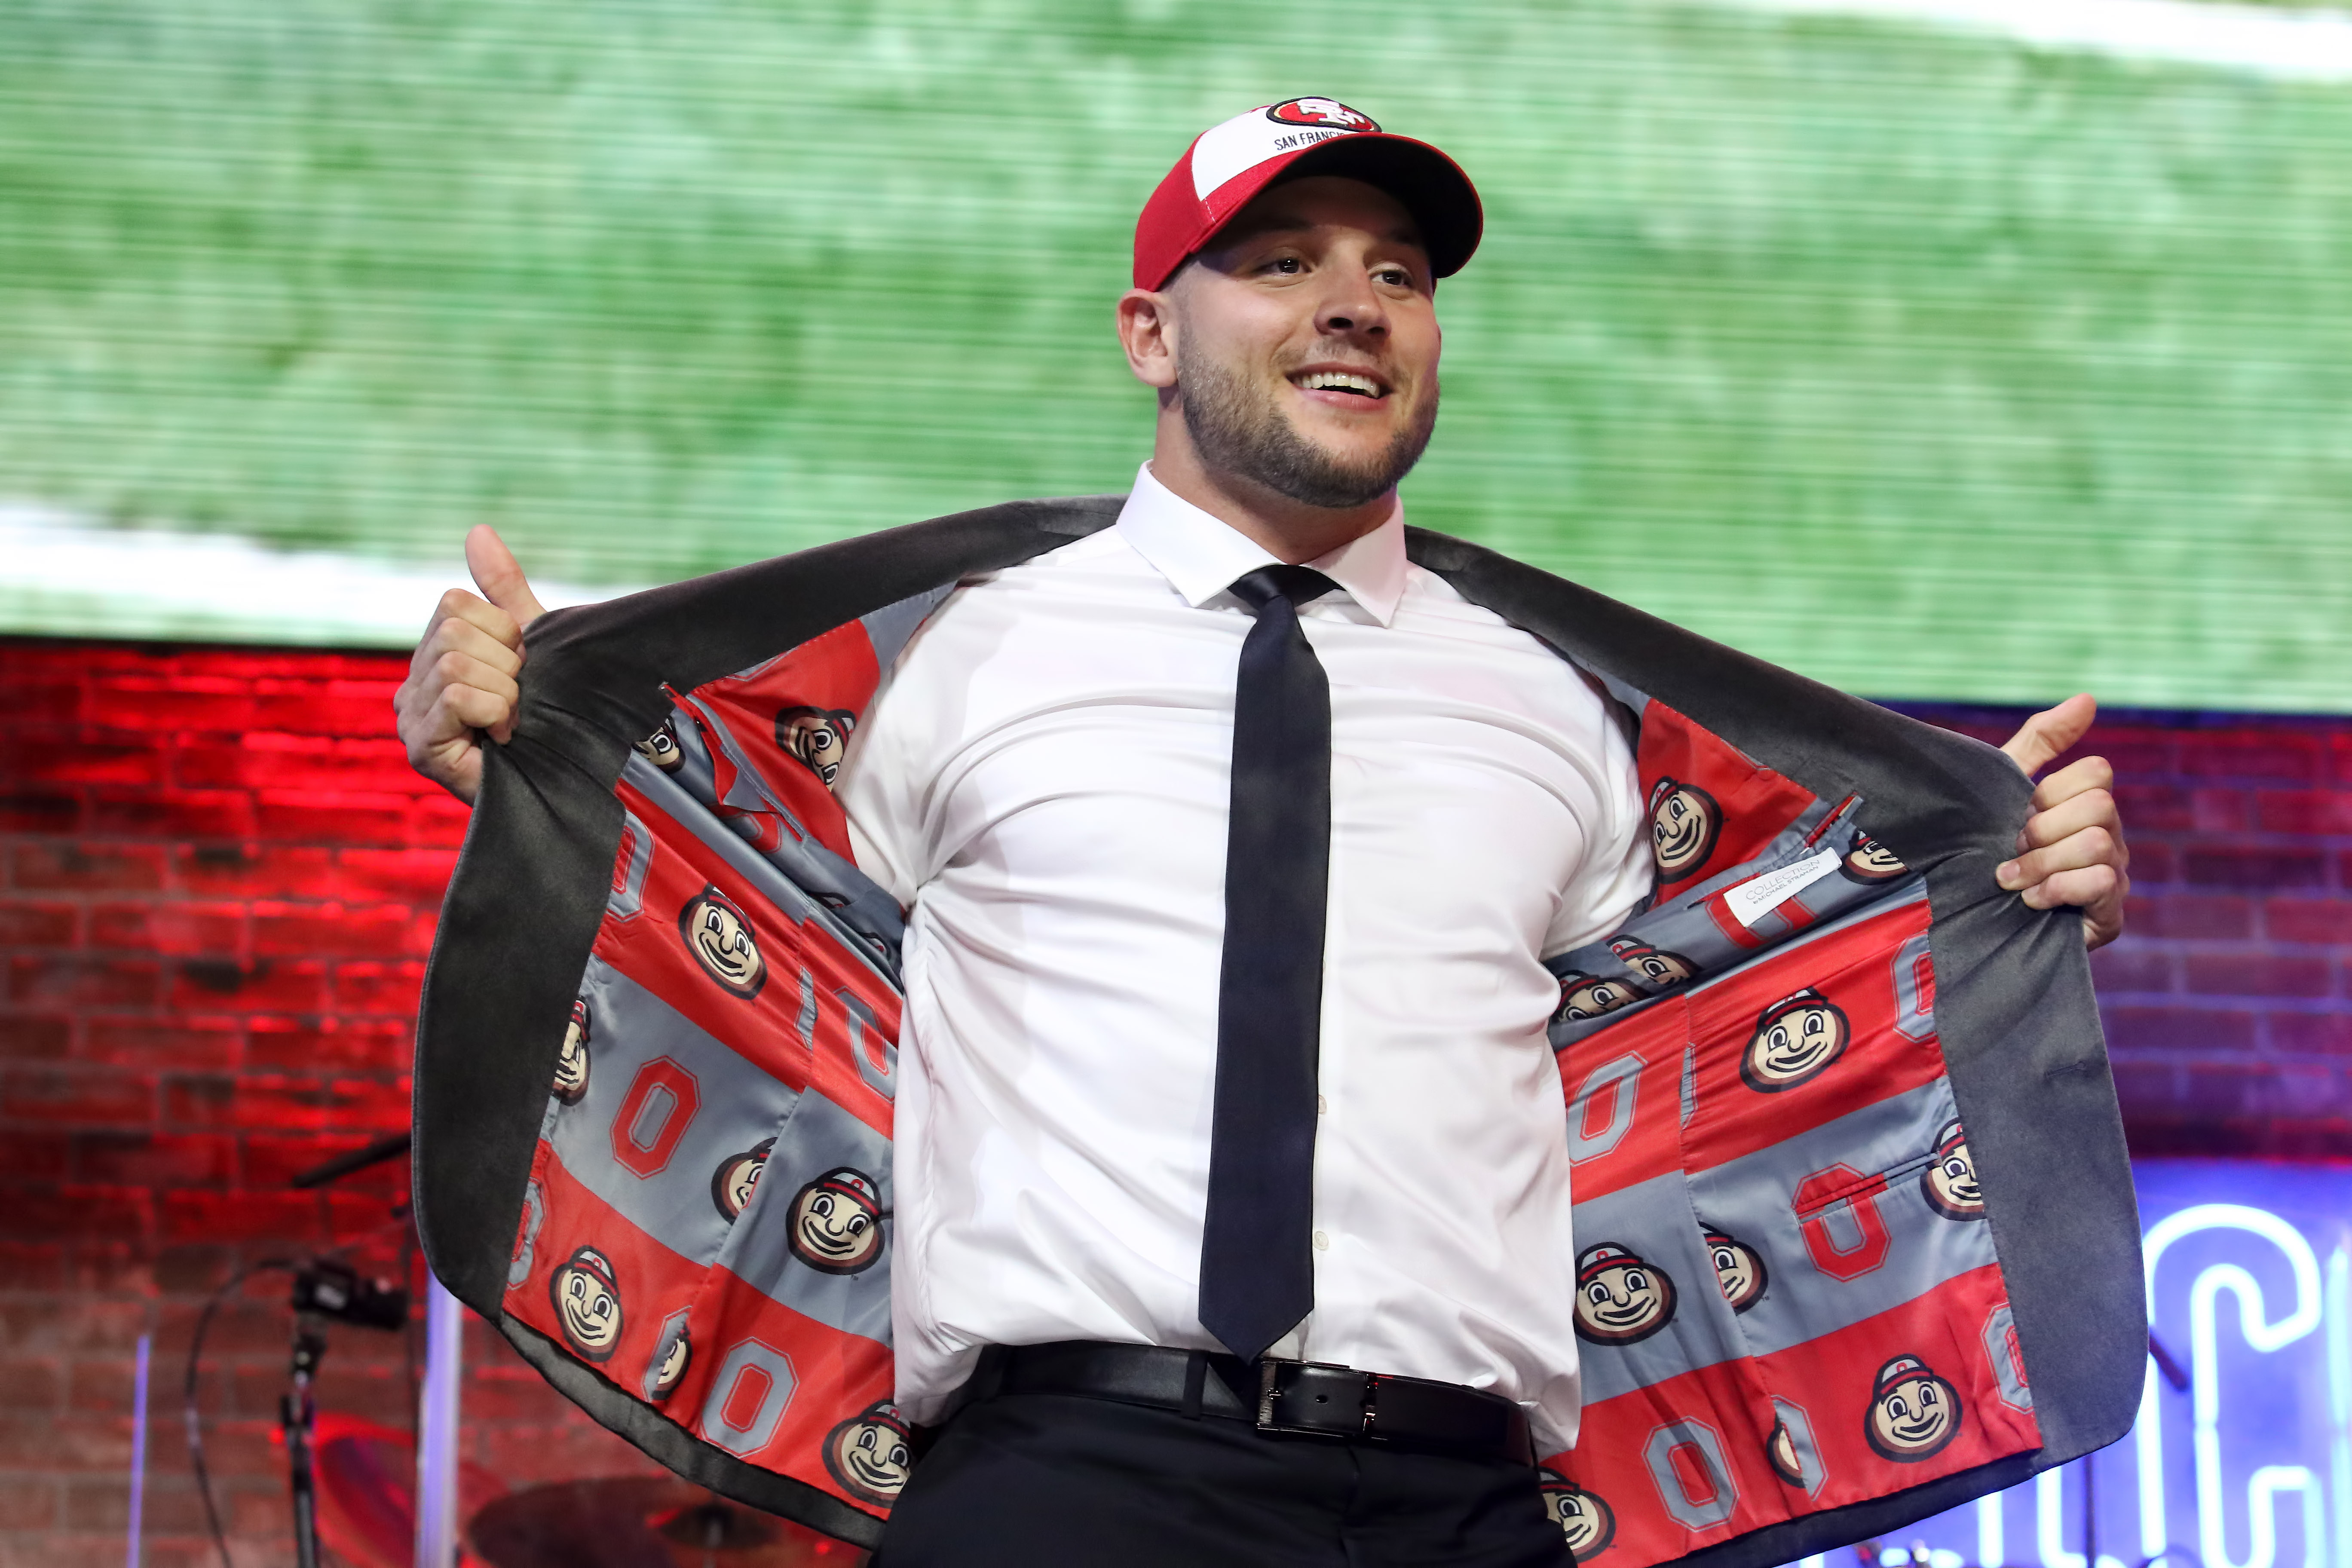 NASHVILLE, TN - APRIL 25: Ohio State defensive end Nick Bosa is selected by the San Francisco 49ers with the second pick during the first round of the 2019 NFL Draft on April 25, 2019, at the Draft Main Stage on Lower Broadway in downtown Nashville, TN.